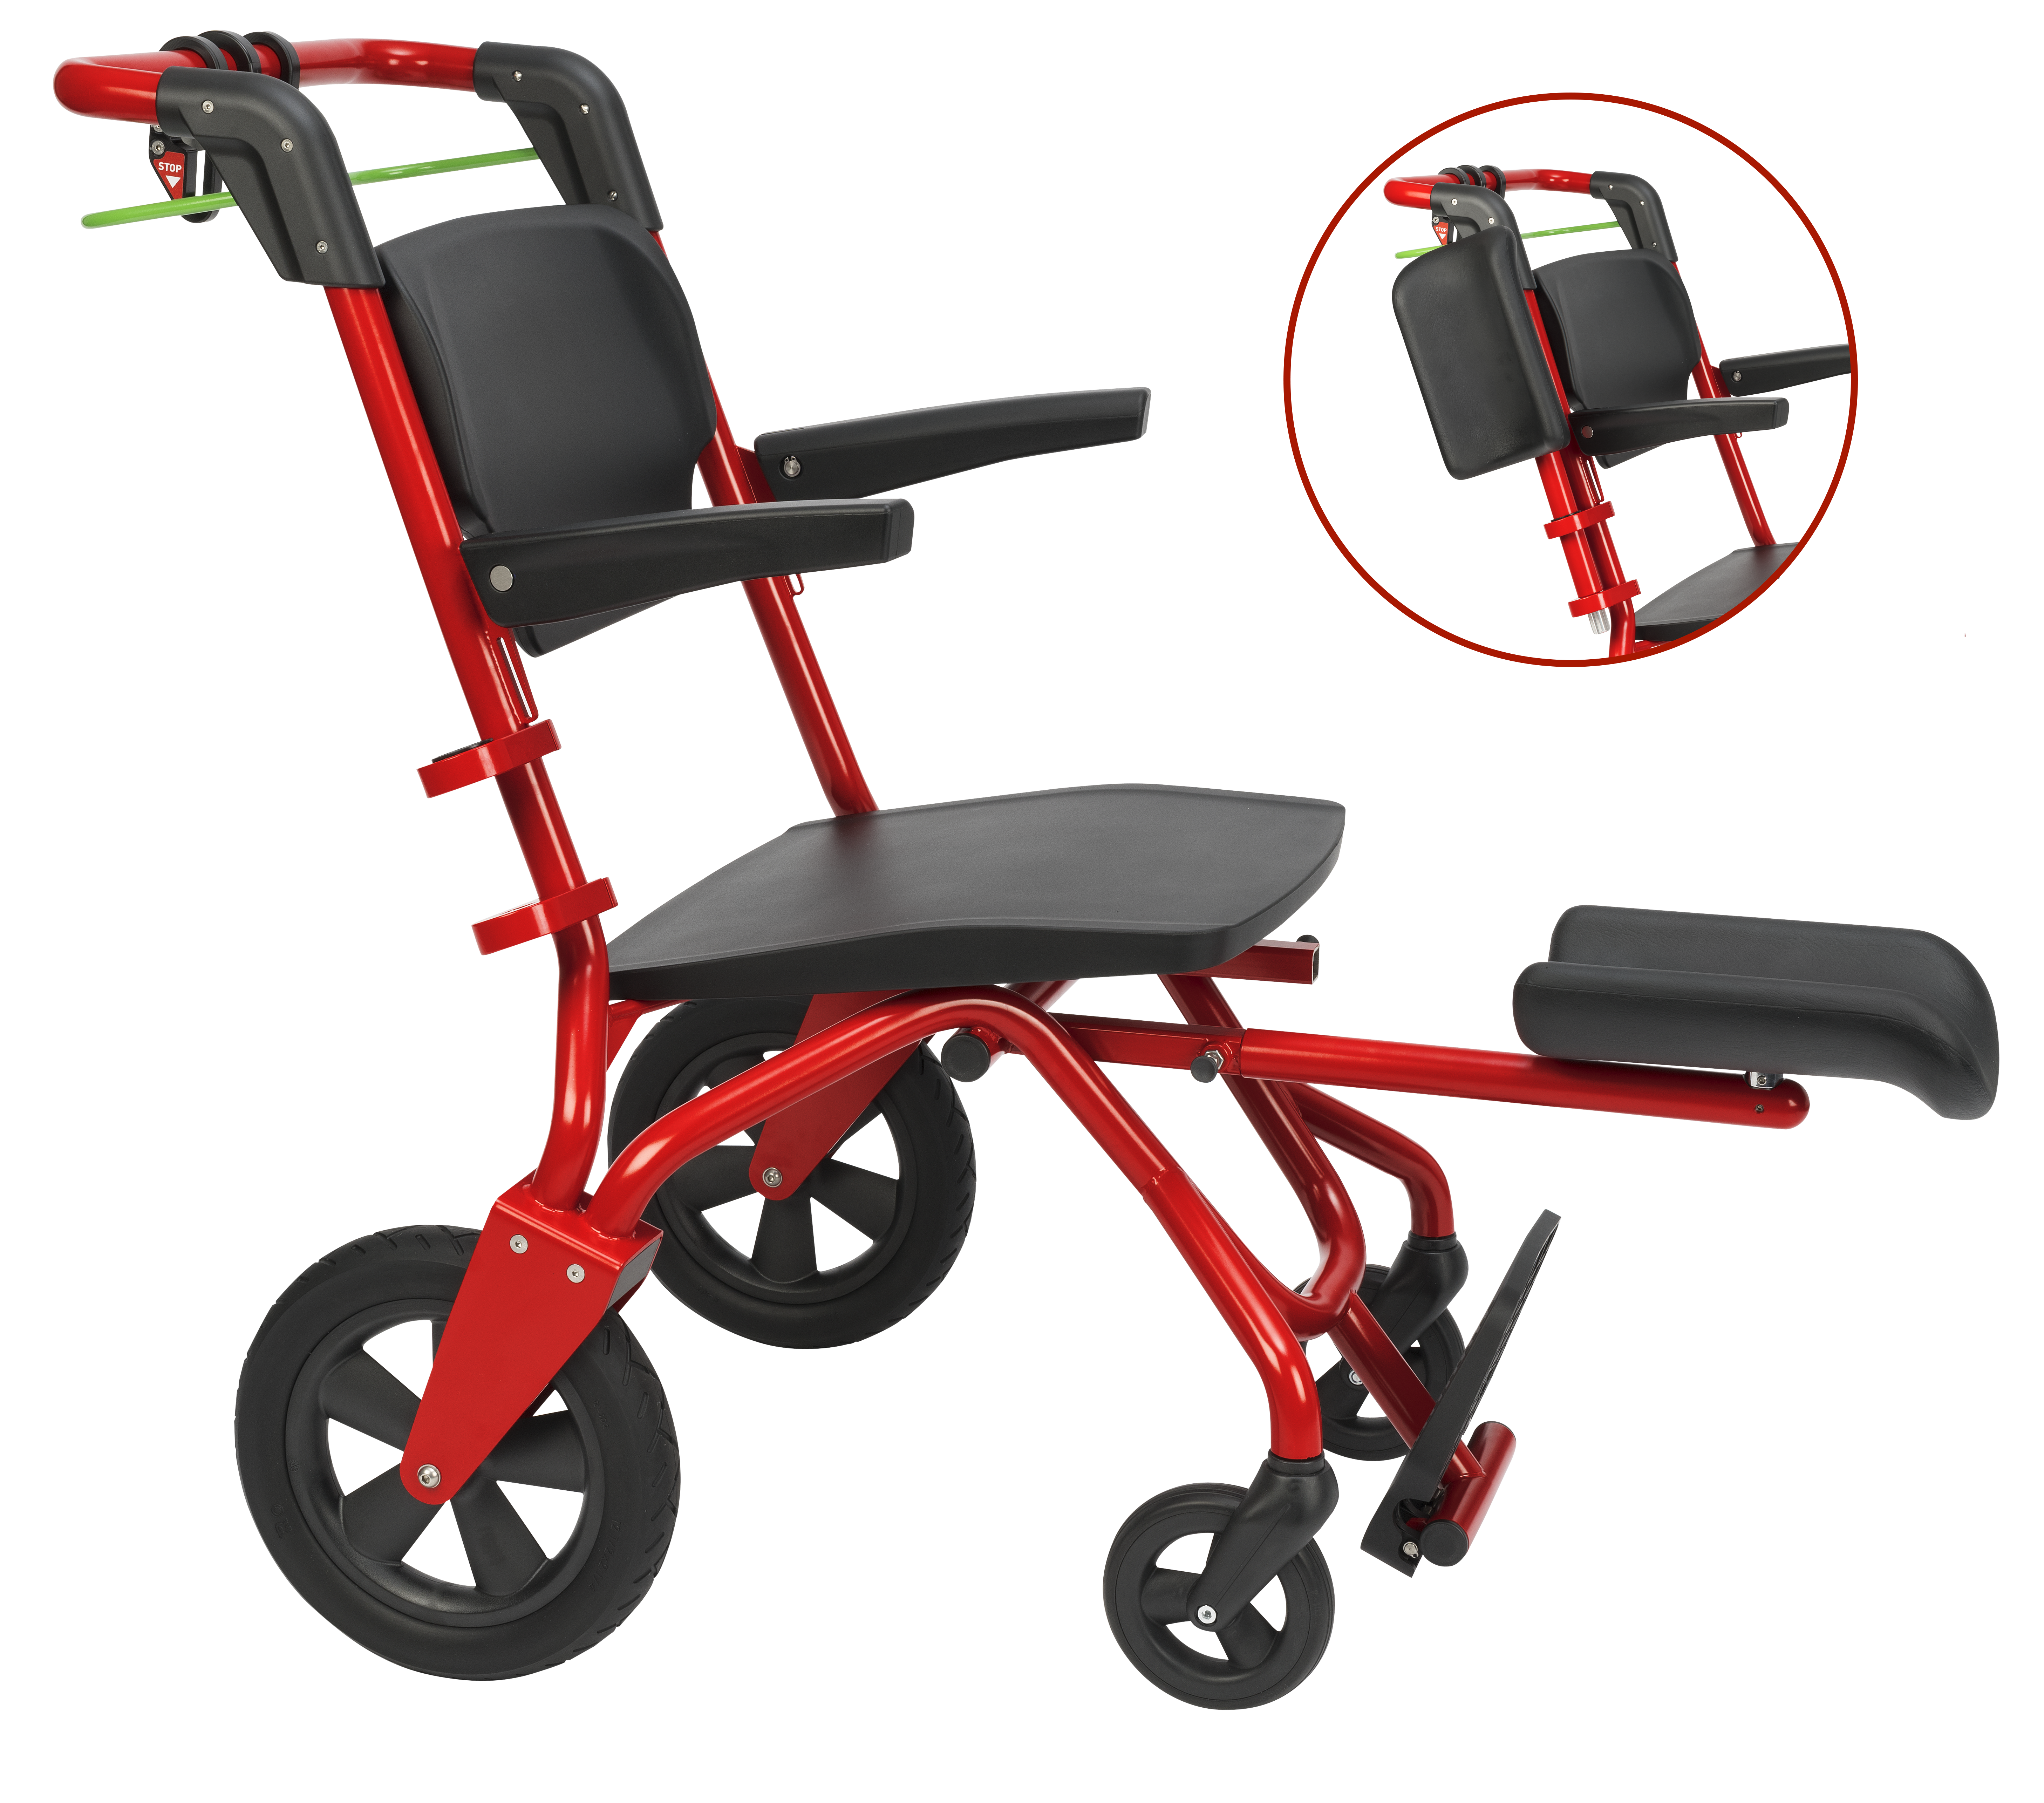 SAM - Mobile Patient Transfer Chair